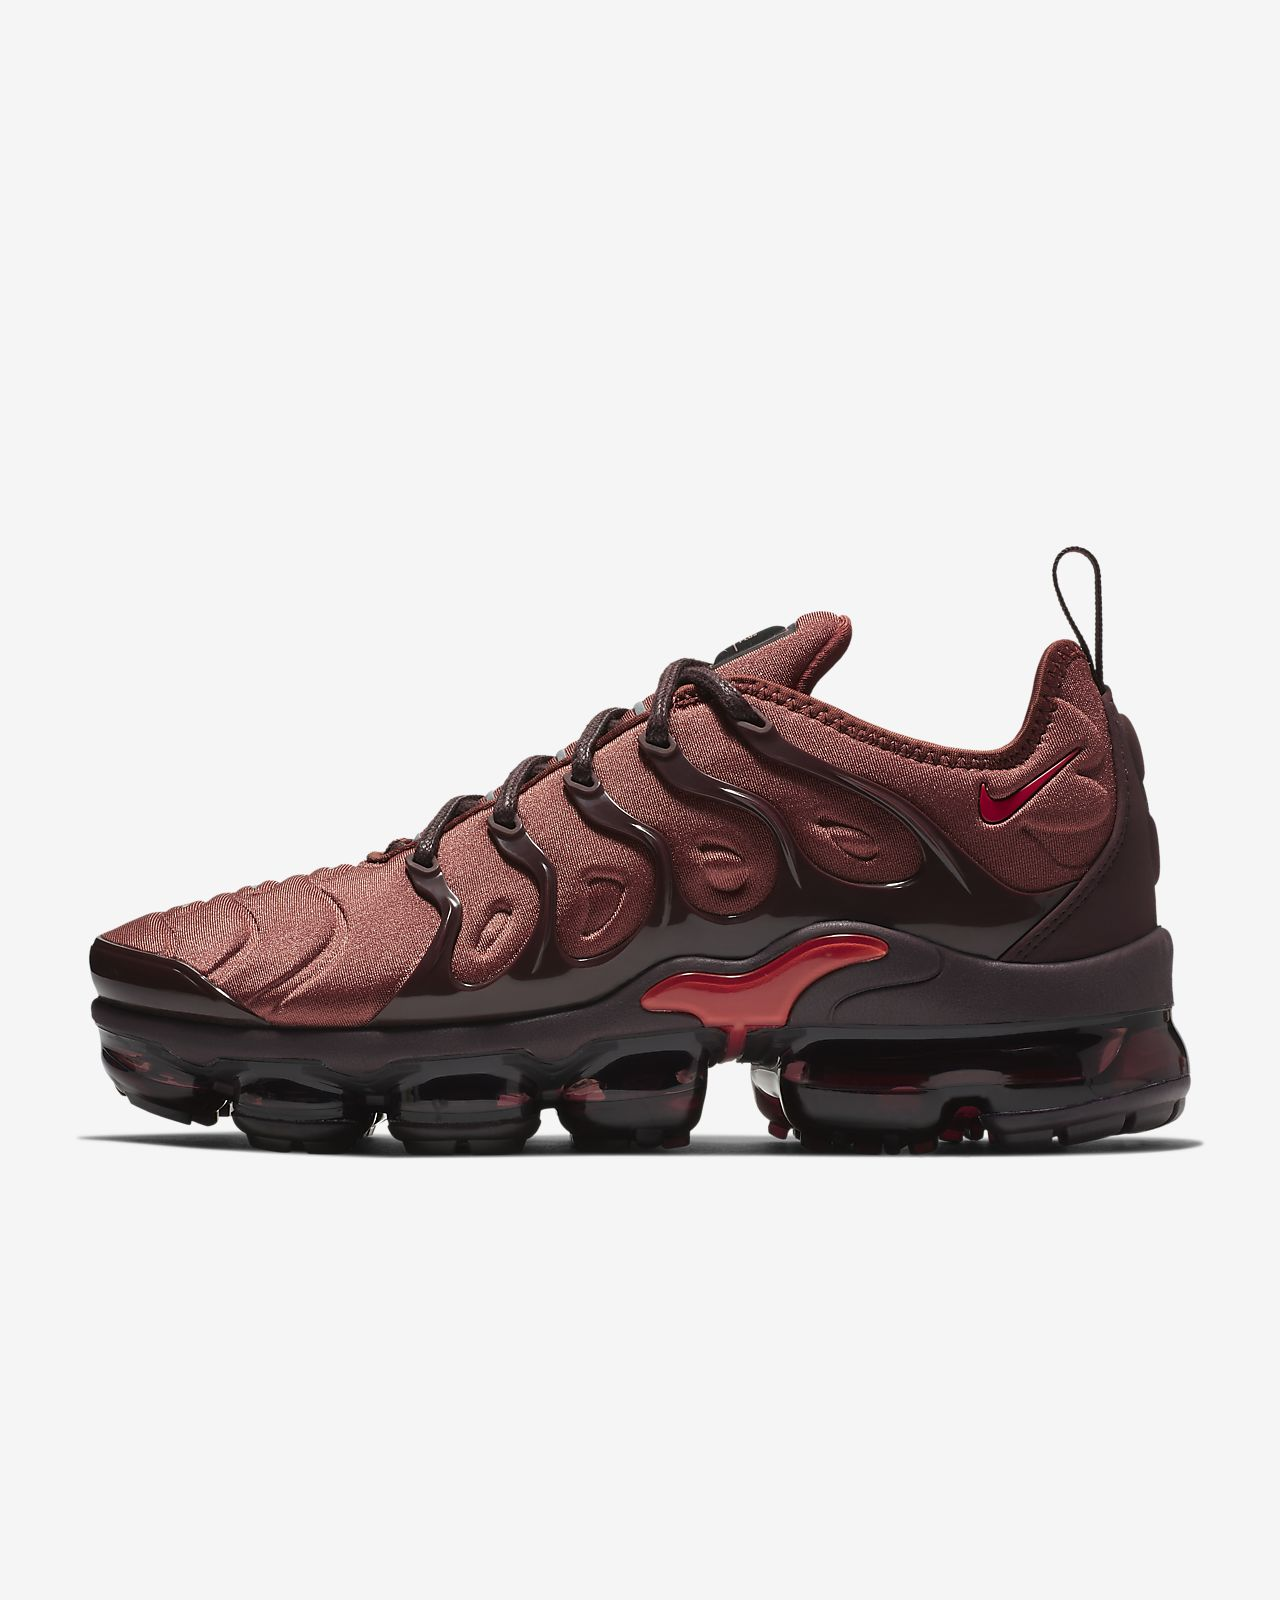 d7947eaffd0 Nike Air VaporMax Plus Women s Shoe. Nike.com PT